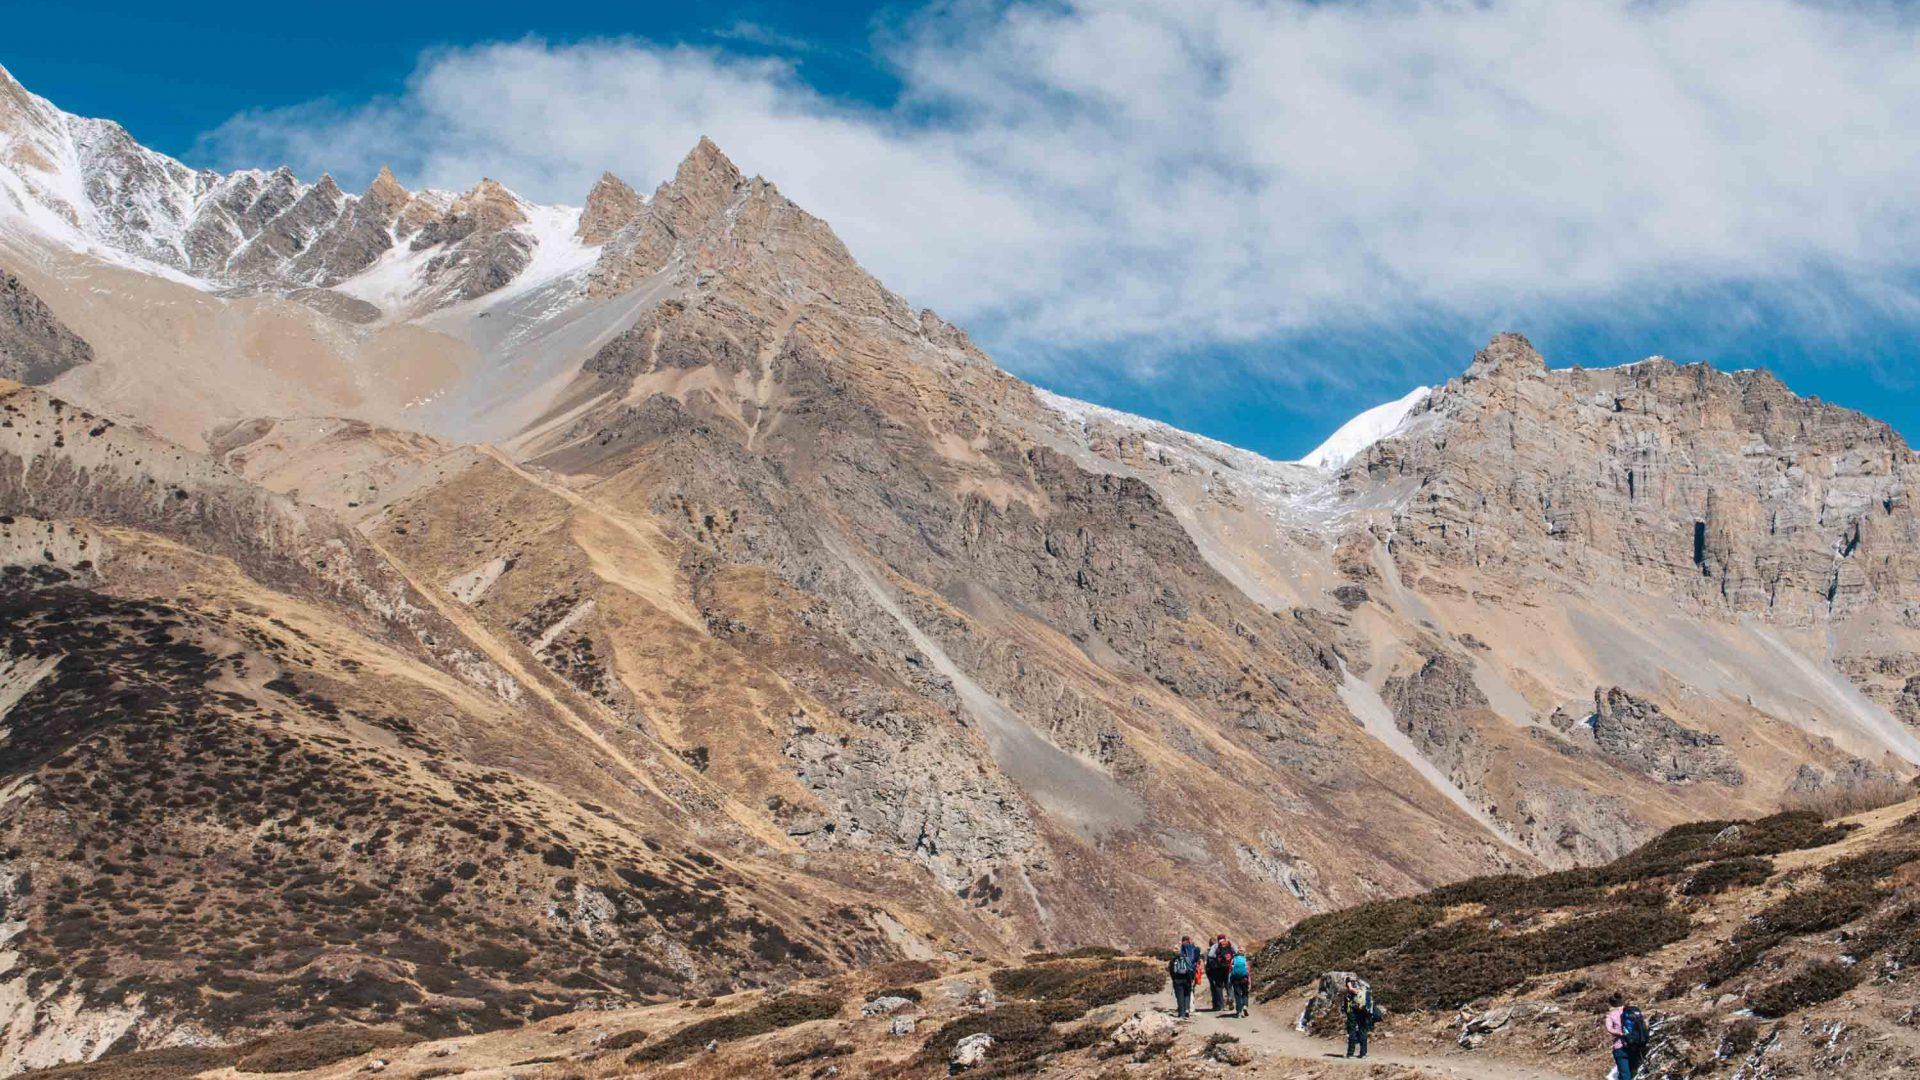 Hikers make their way along the Annapurna Trail in Nepal.